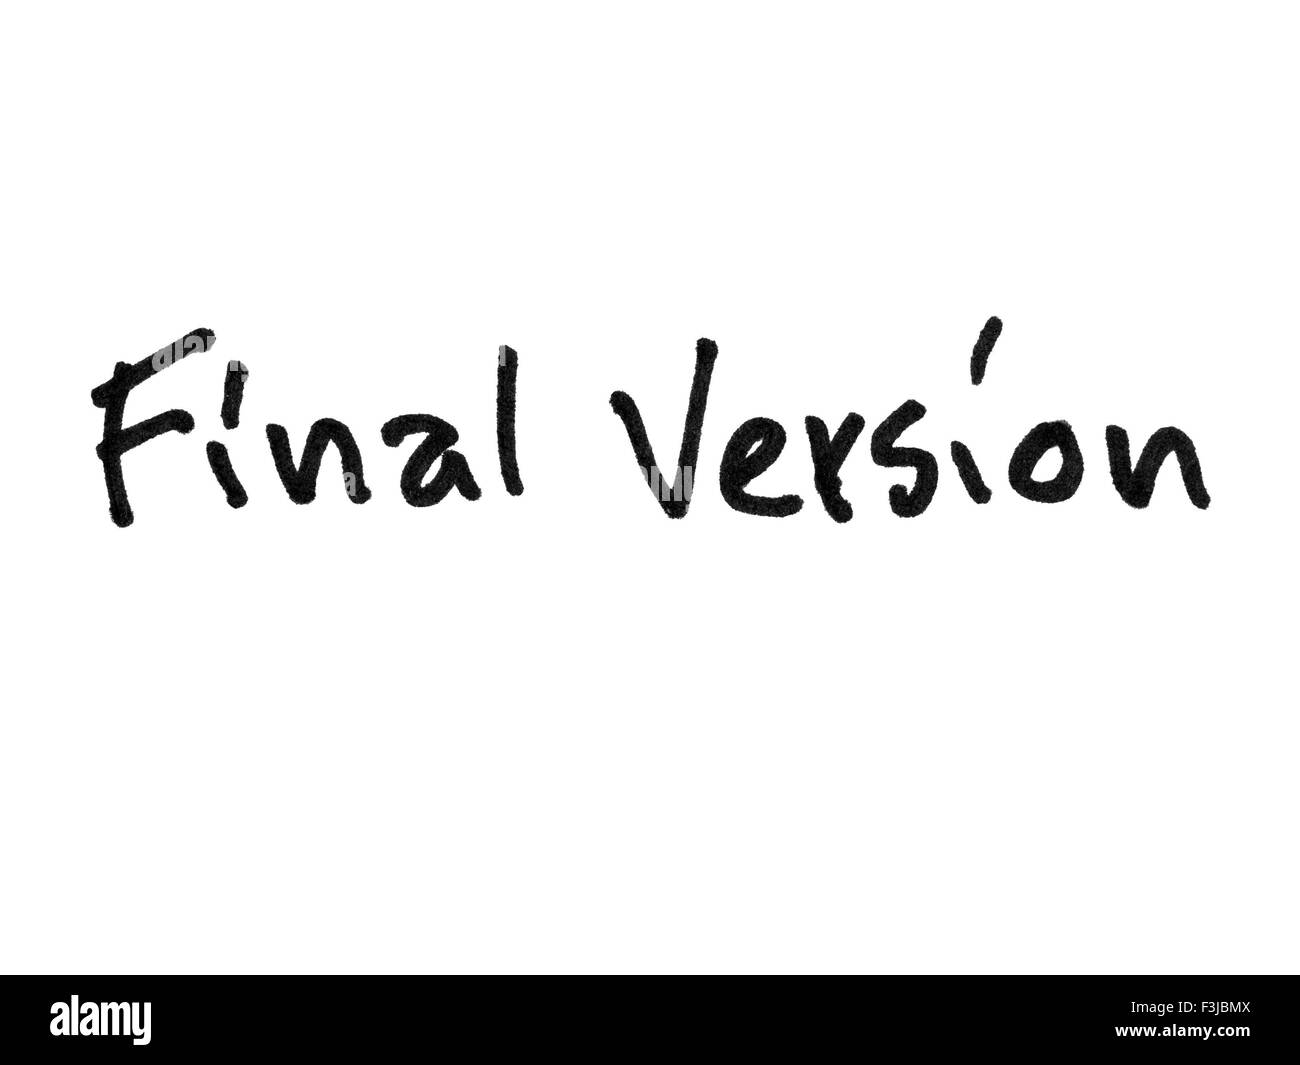 Final version handwritten with black marker isolated on white background - Stock Image